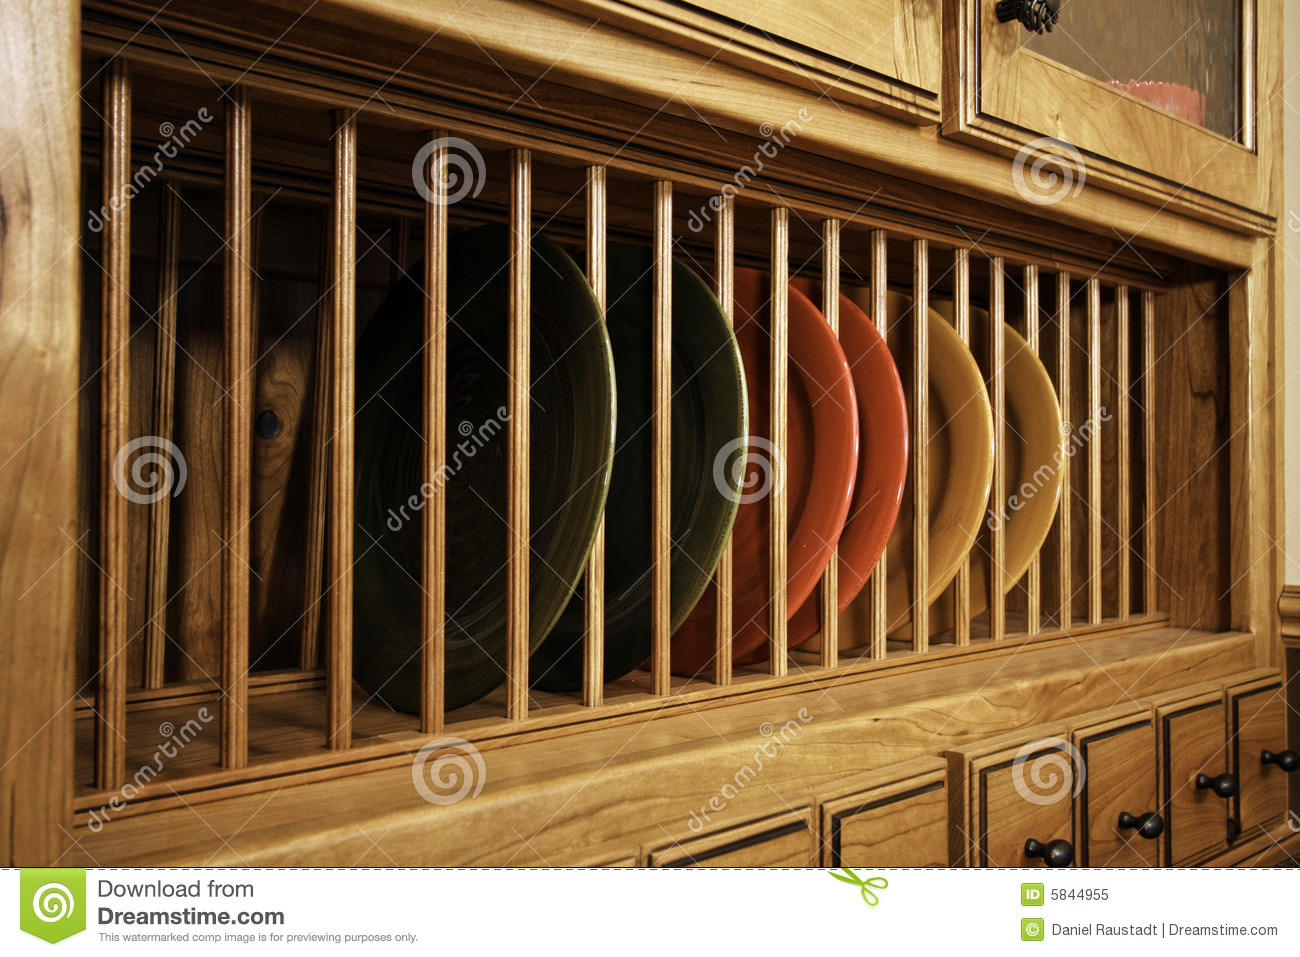 Unique Kitchen Cabinet Dish Storage Royalty Free Stock Photo ...